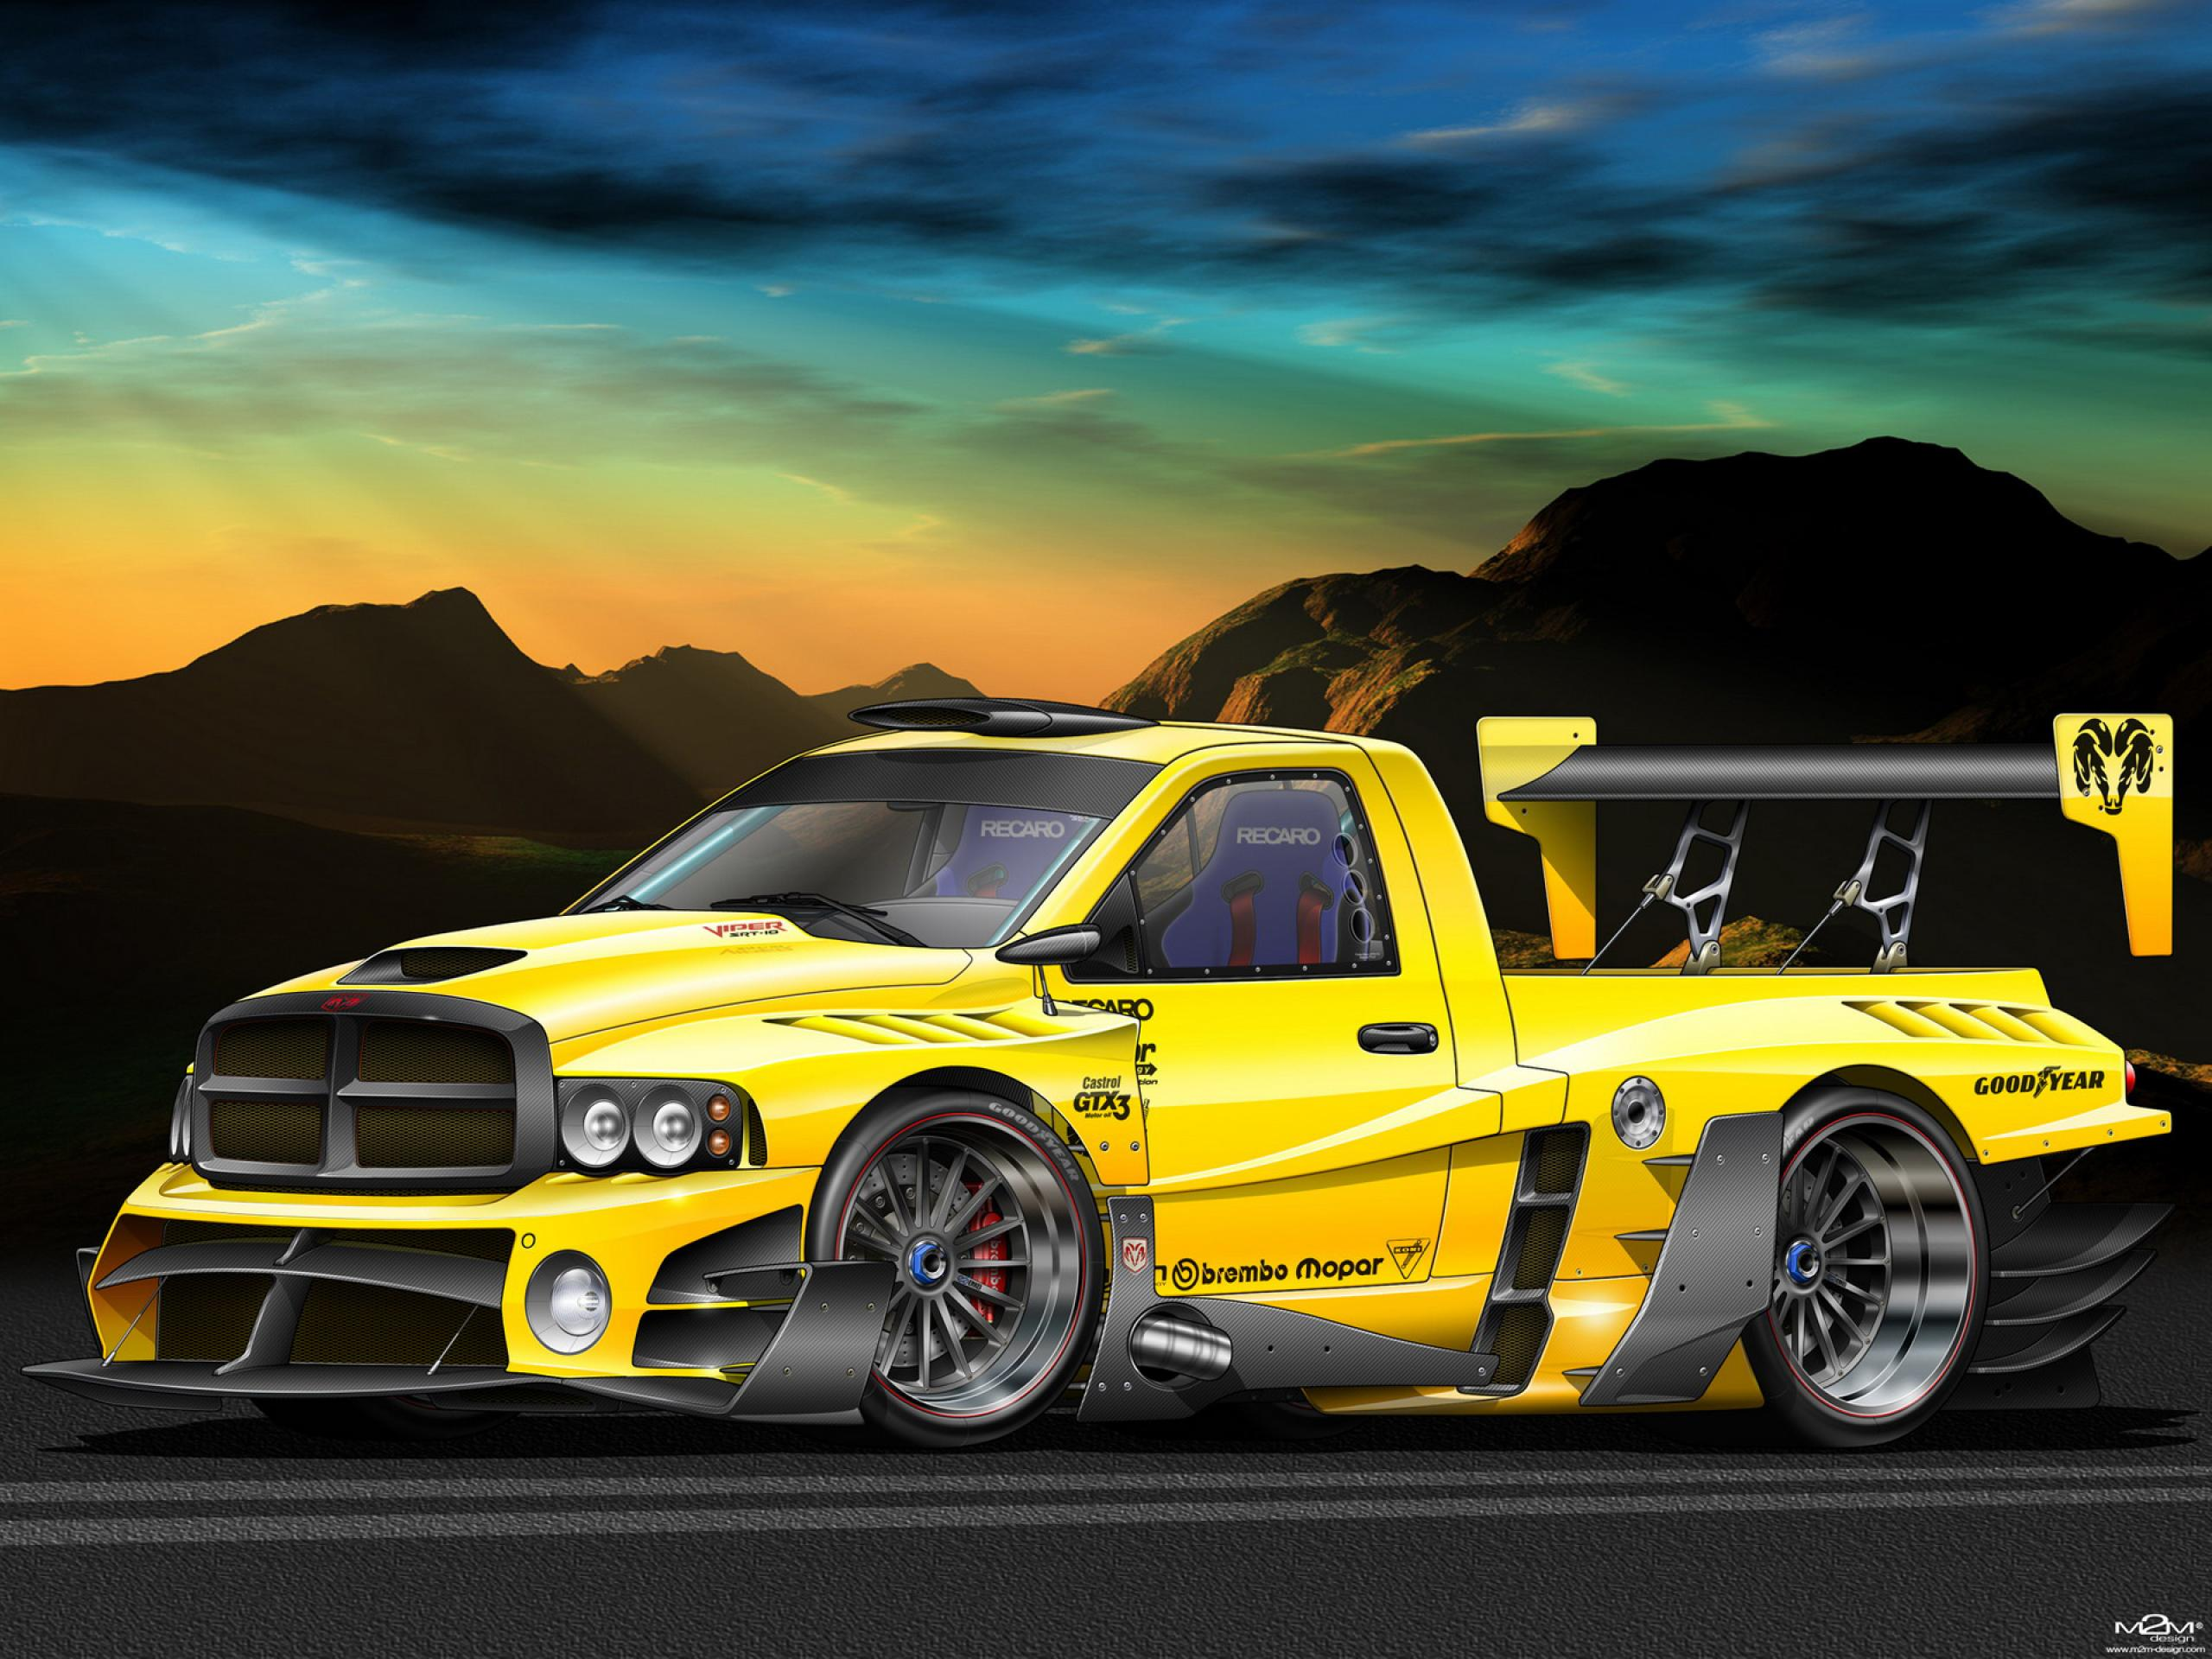 black and yellow cool cars 1 free hd wallpaper. Black Bedroom Furniture Sets. Home Design Ideas